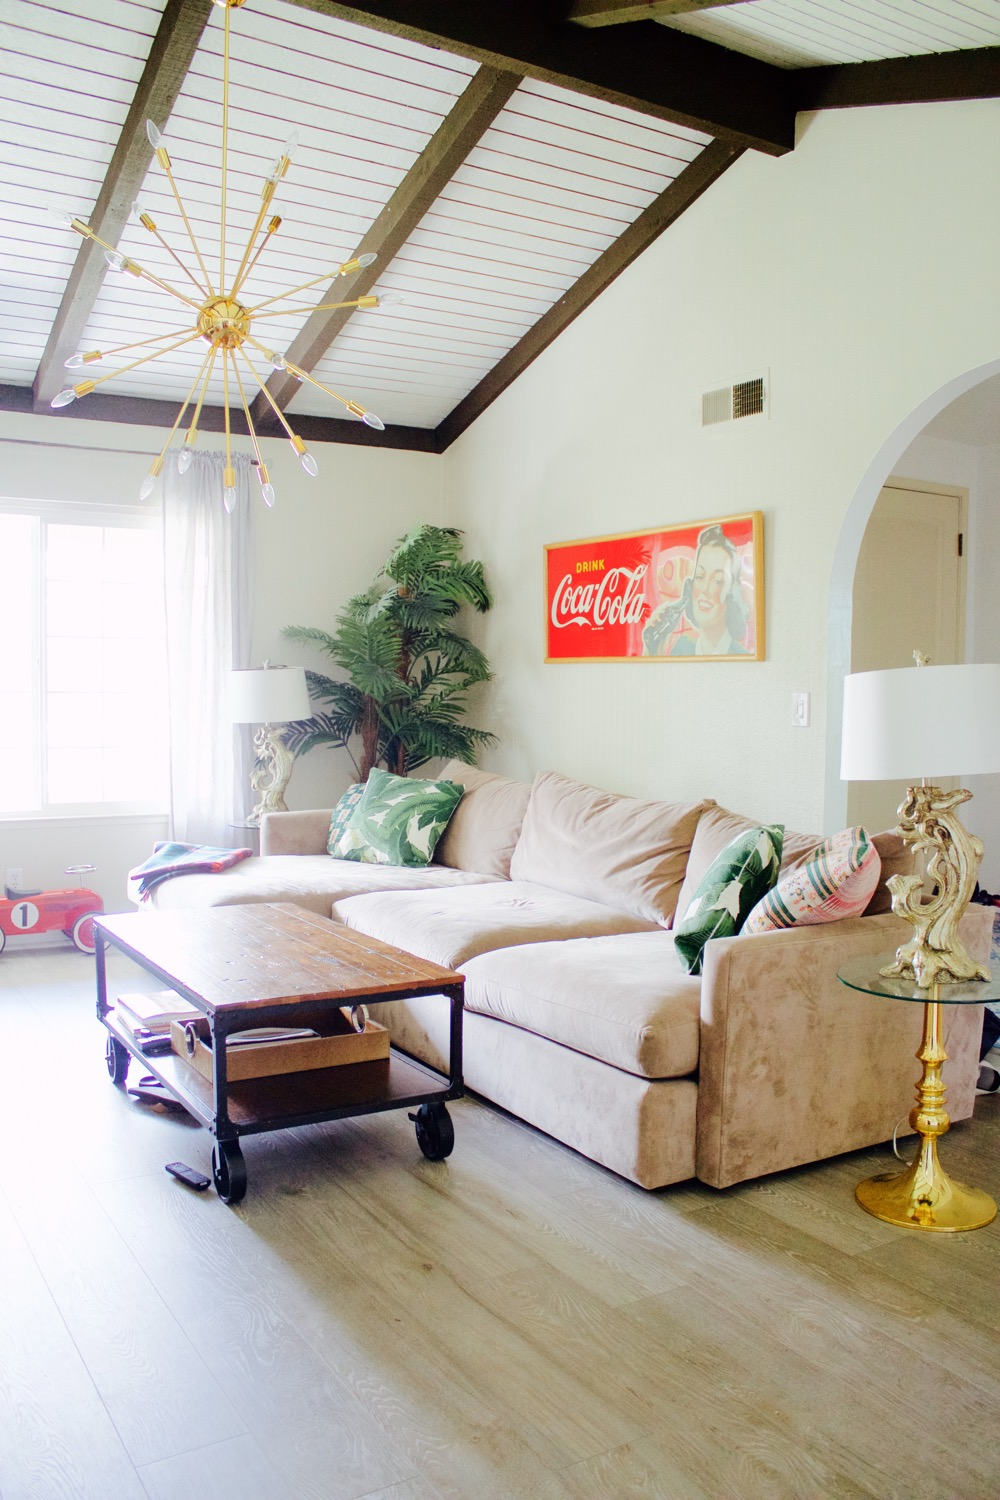 A Look Inside Our New Home Ramshackle Glam